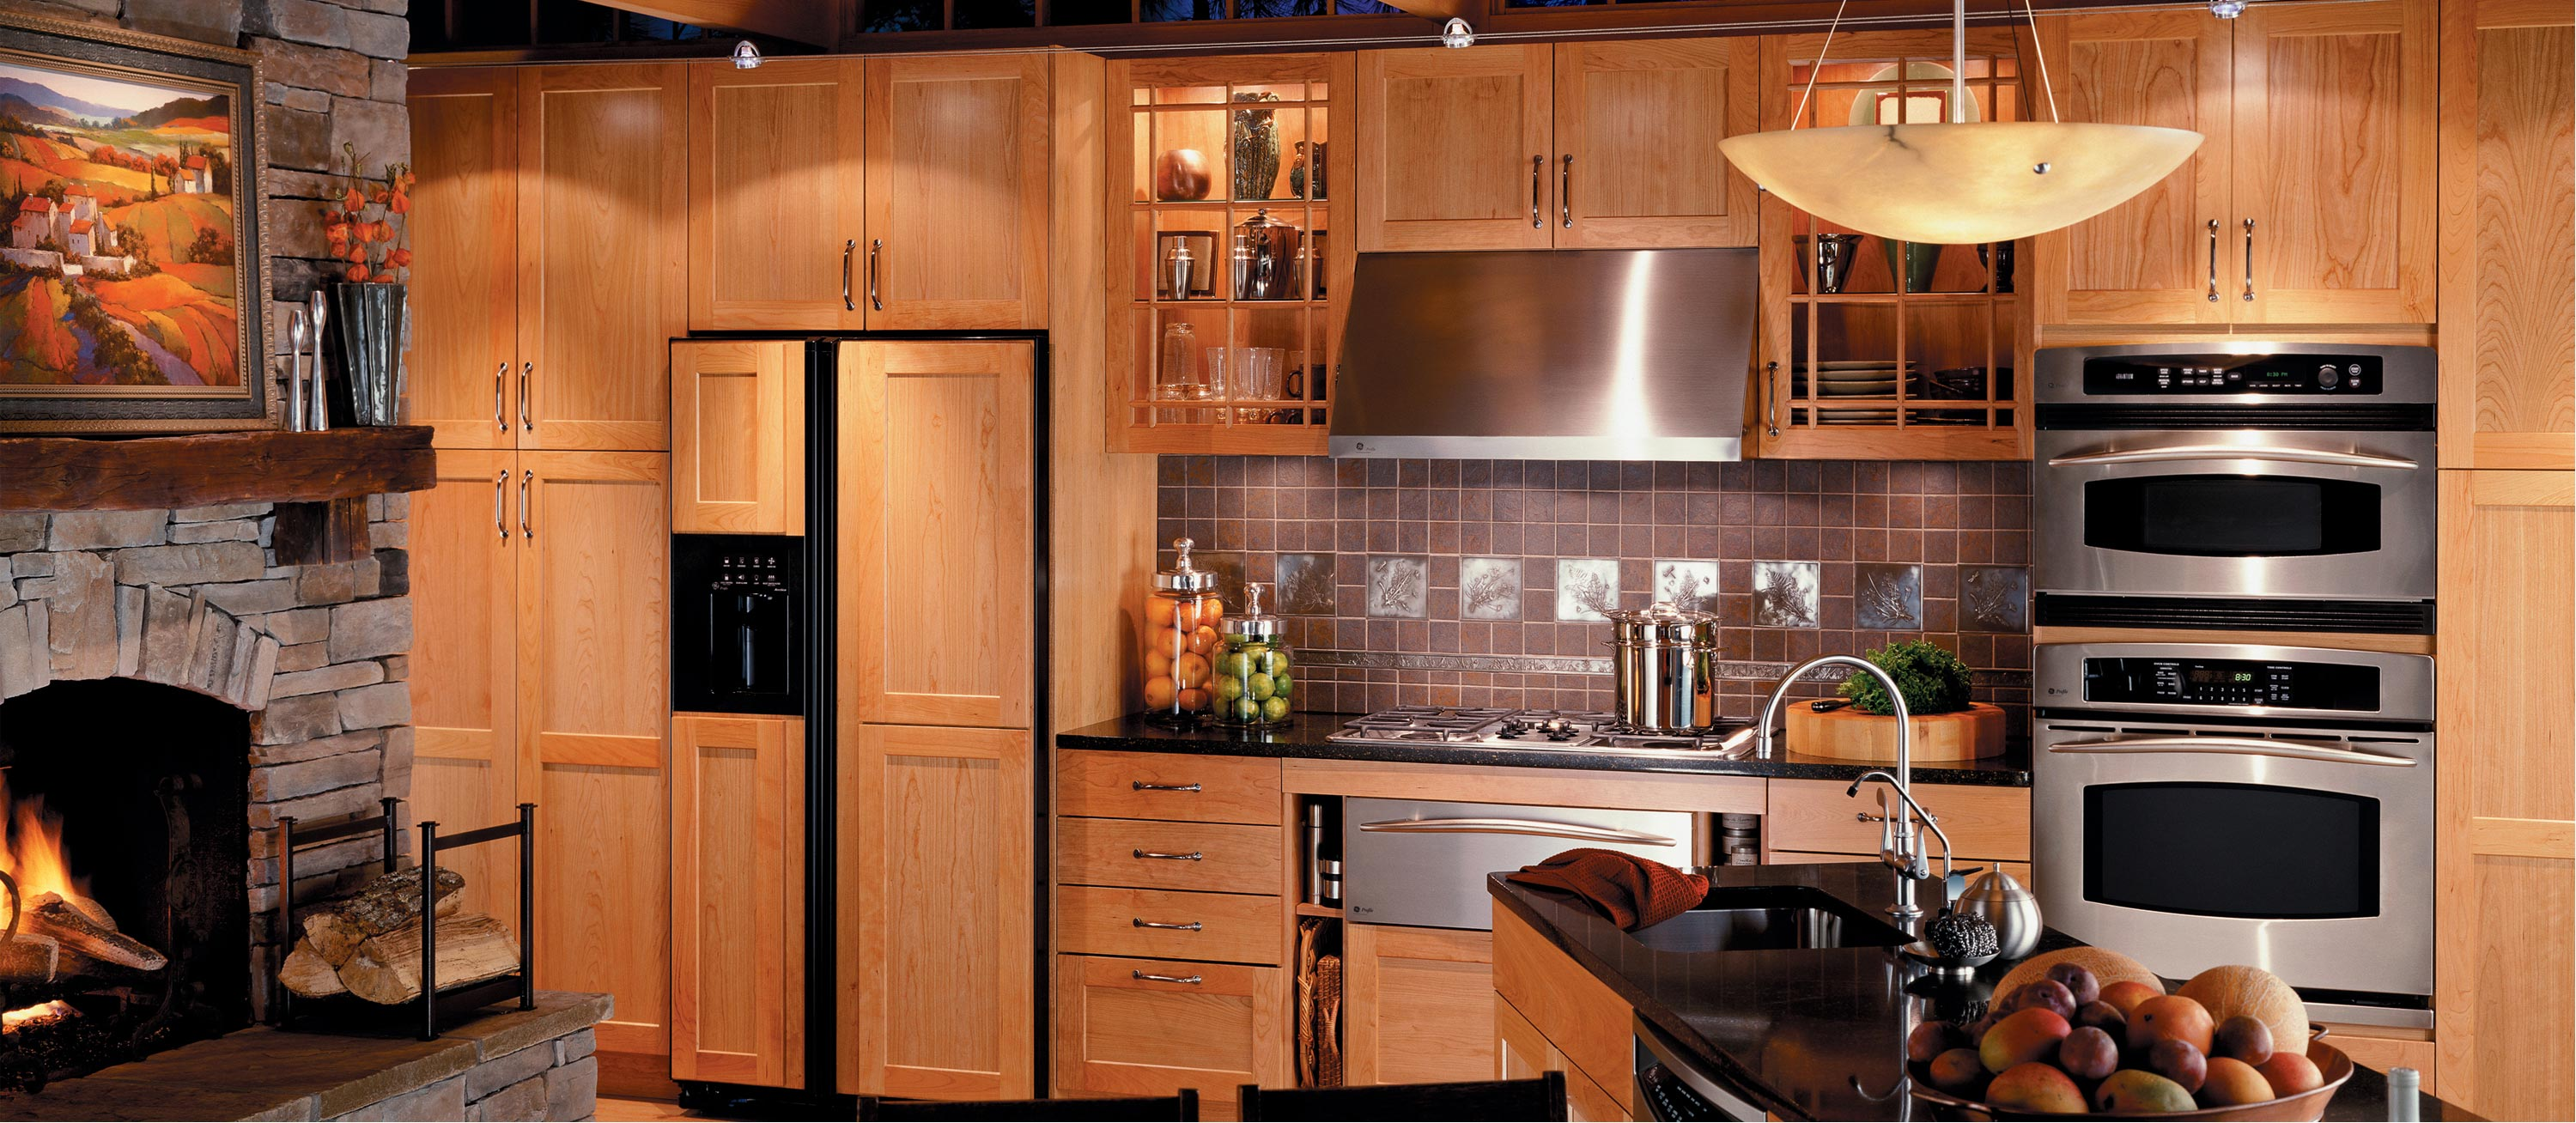 Beckoning Wooden Cabinet also Attractive Chandelier For Best Kitchen Layout Design